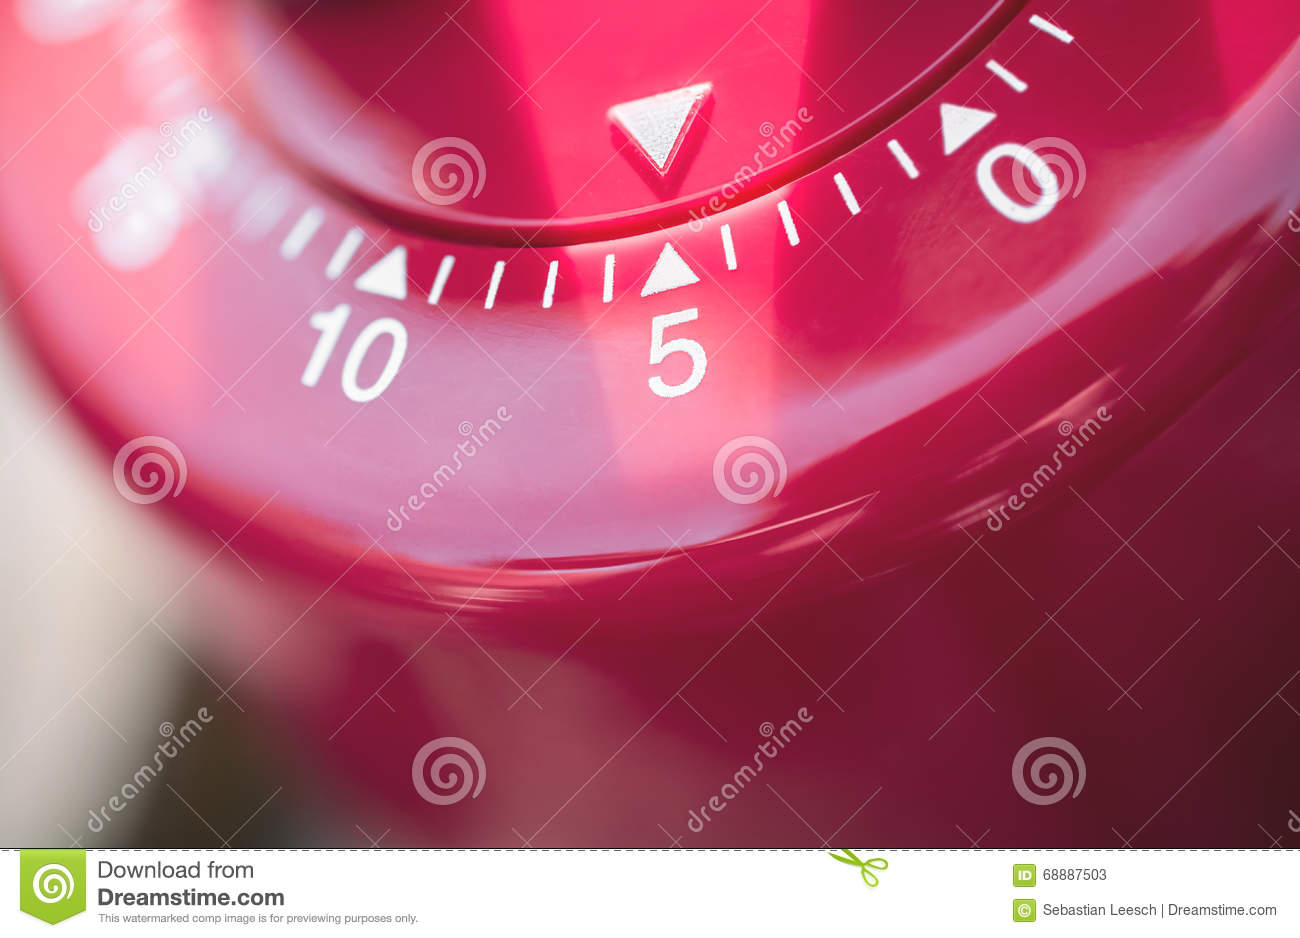 macro of a kitchen egg timer 5 minutes stock image image of